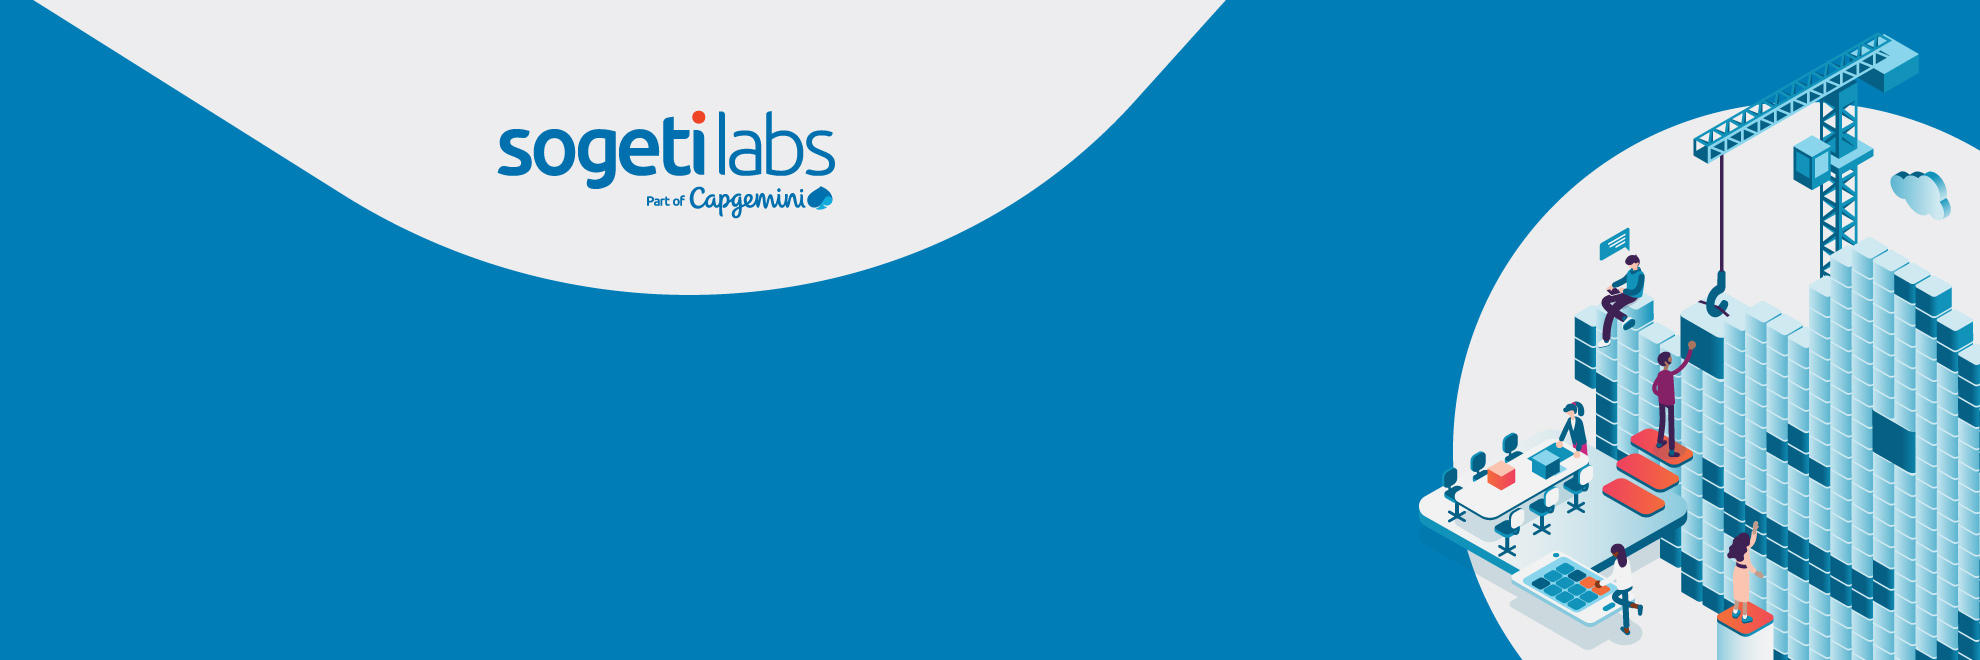 SogetiLabs - The Synthetic Generation